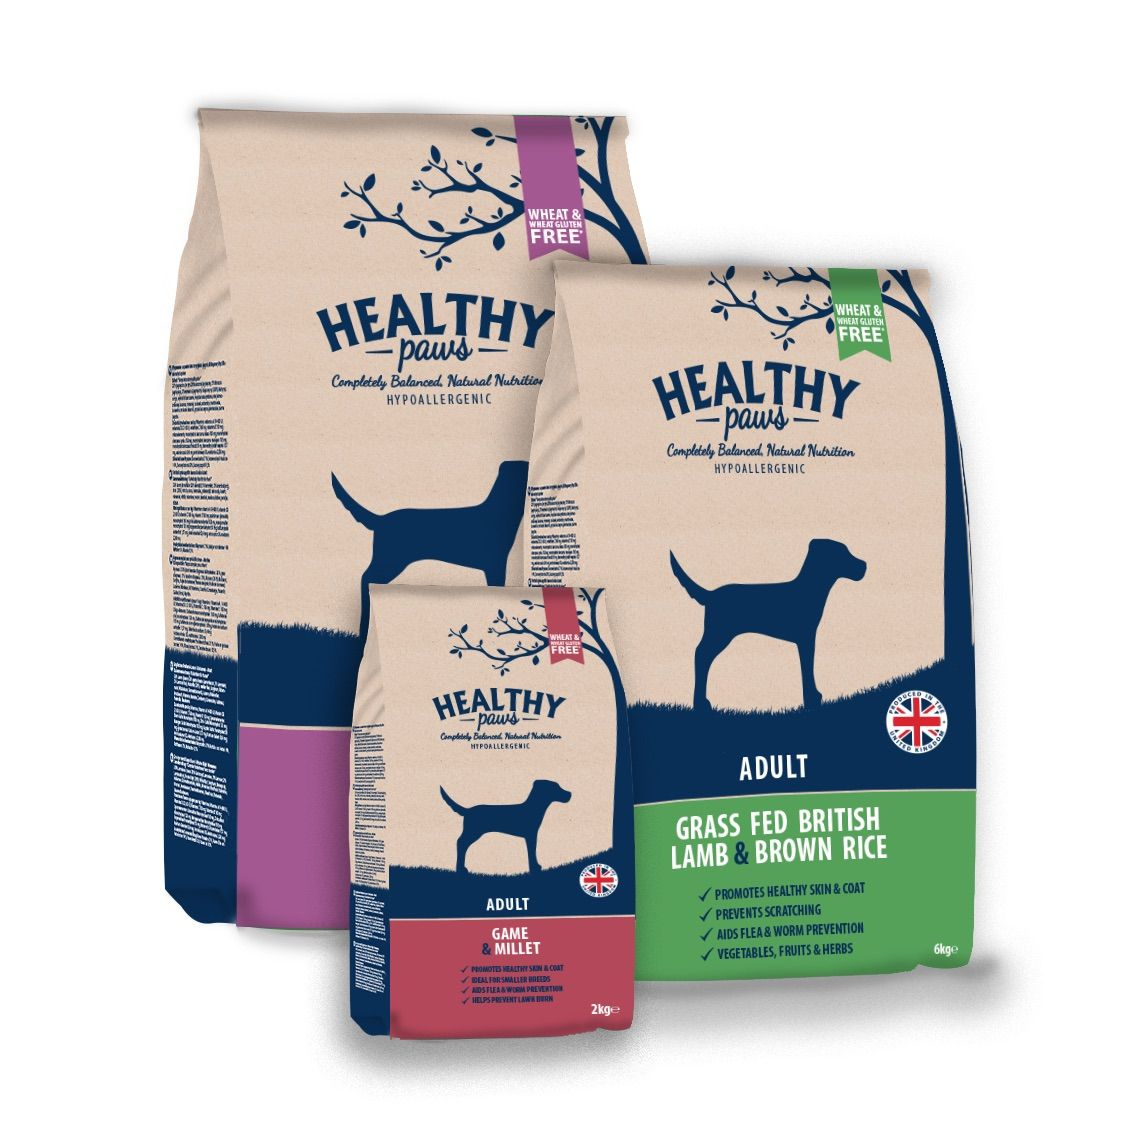 Healthy Paws Adult Bags Pets Natural World Dog Food Recipes